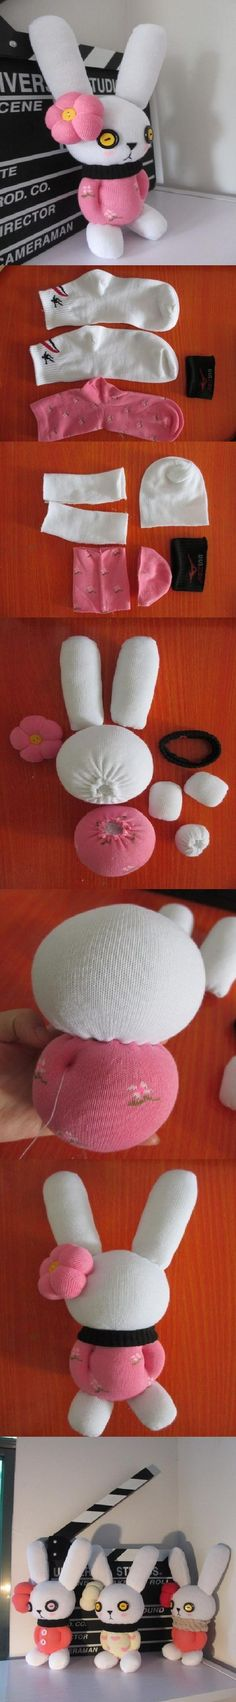 DIY Cute Sock Bunny | iCreativeIdeas.com Follow Us on Facebook --> https://www.facebook.com/icreativeideas